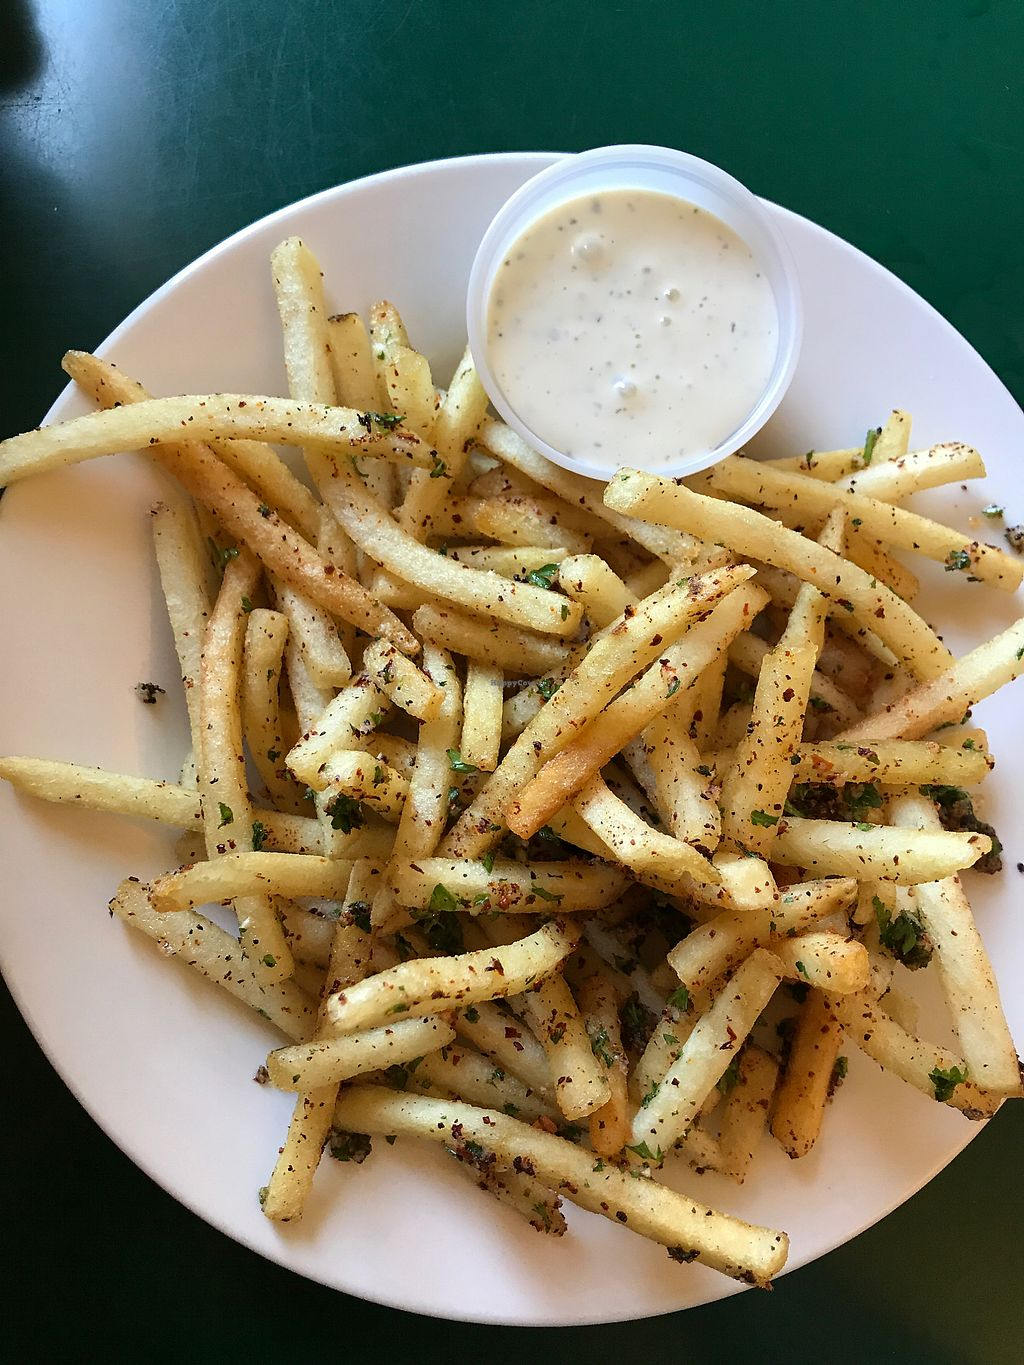 """Photo of East West Cafe  by <a href=""""/members/profile/sararowan"""">sararowan</a> <br/>garlic fries <br/> July 17, 2017  - <a href='/contact/abuse/image/3414/281569'>Report</a>"""